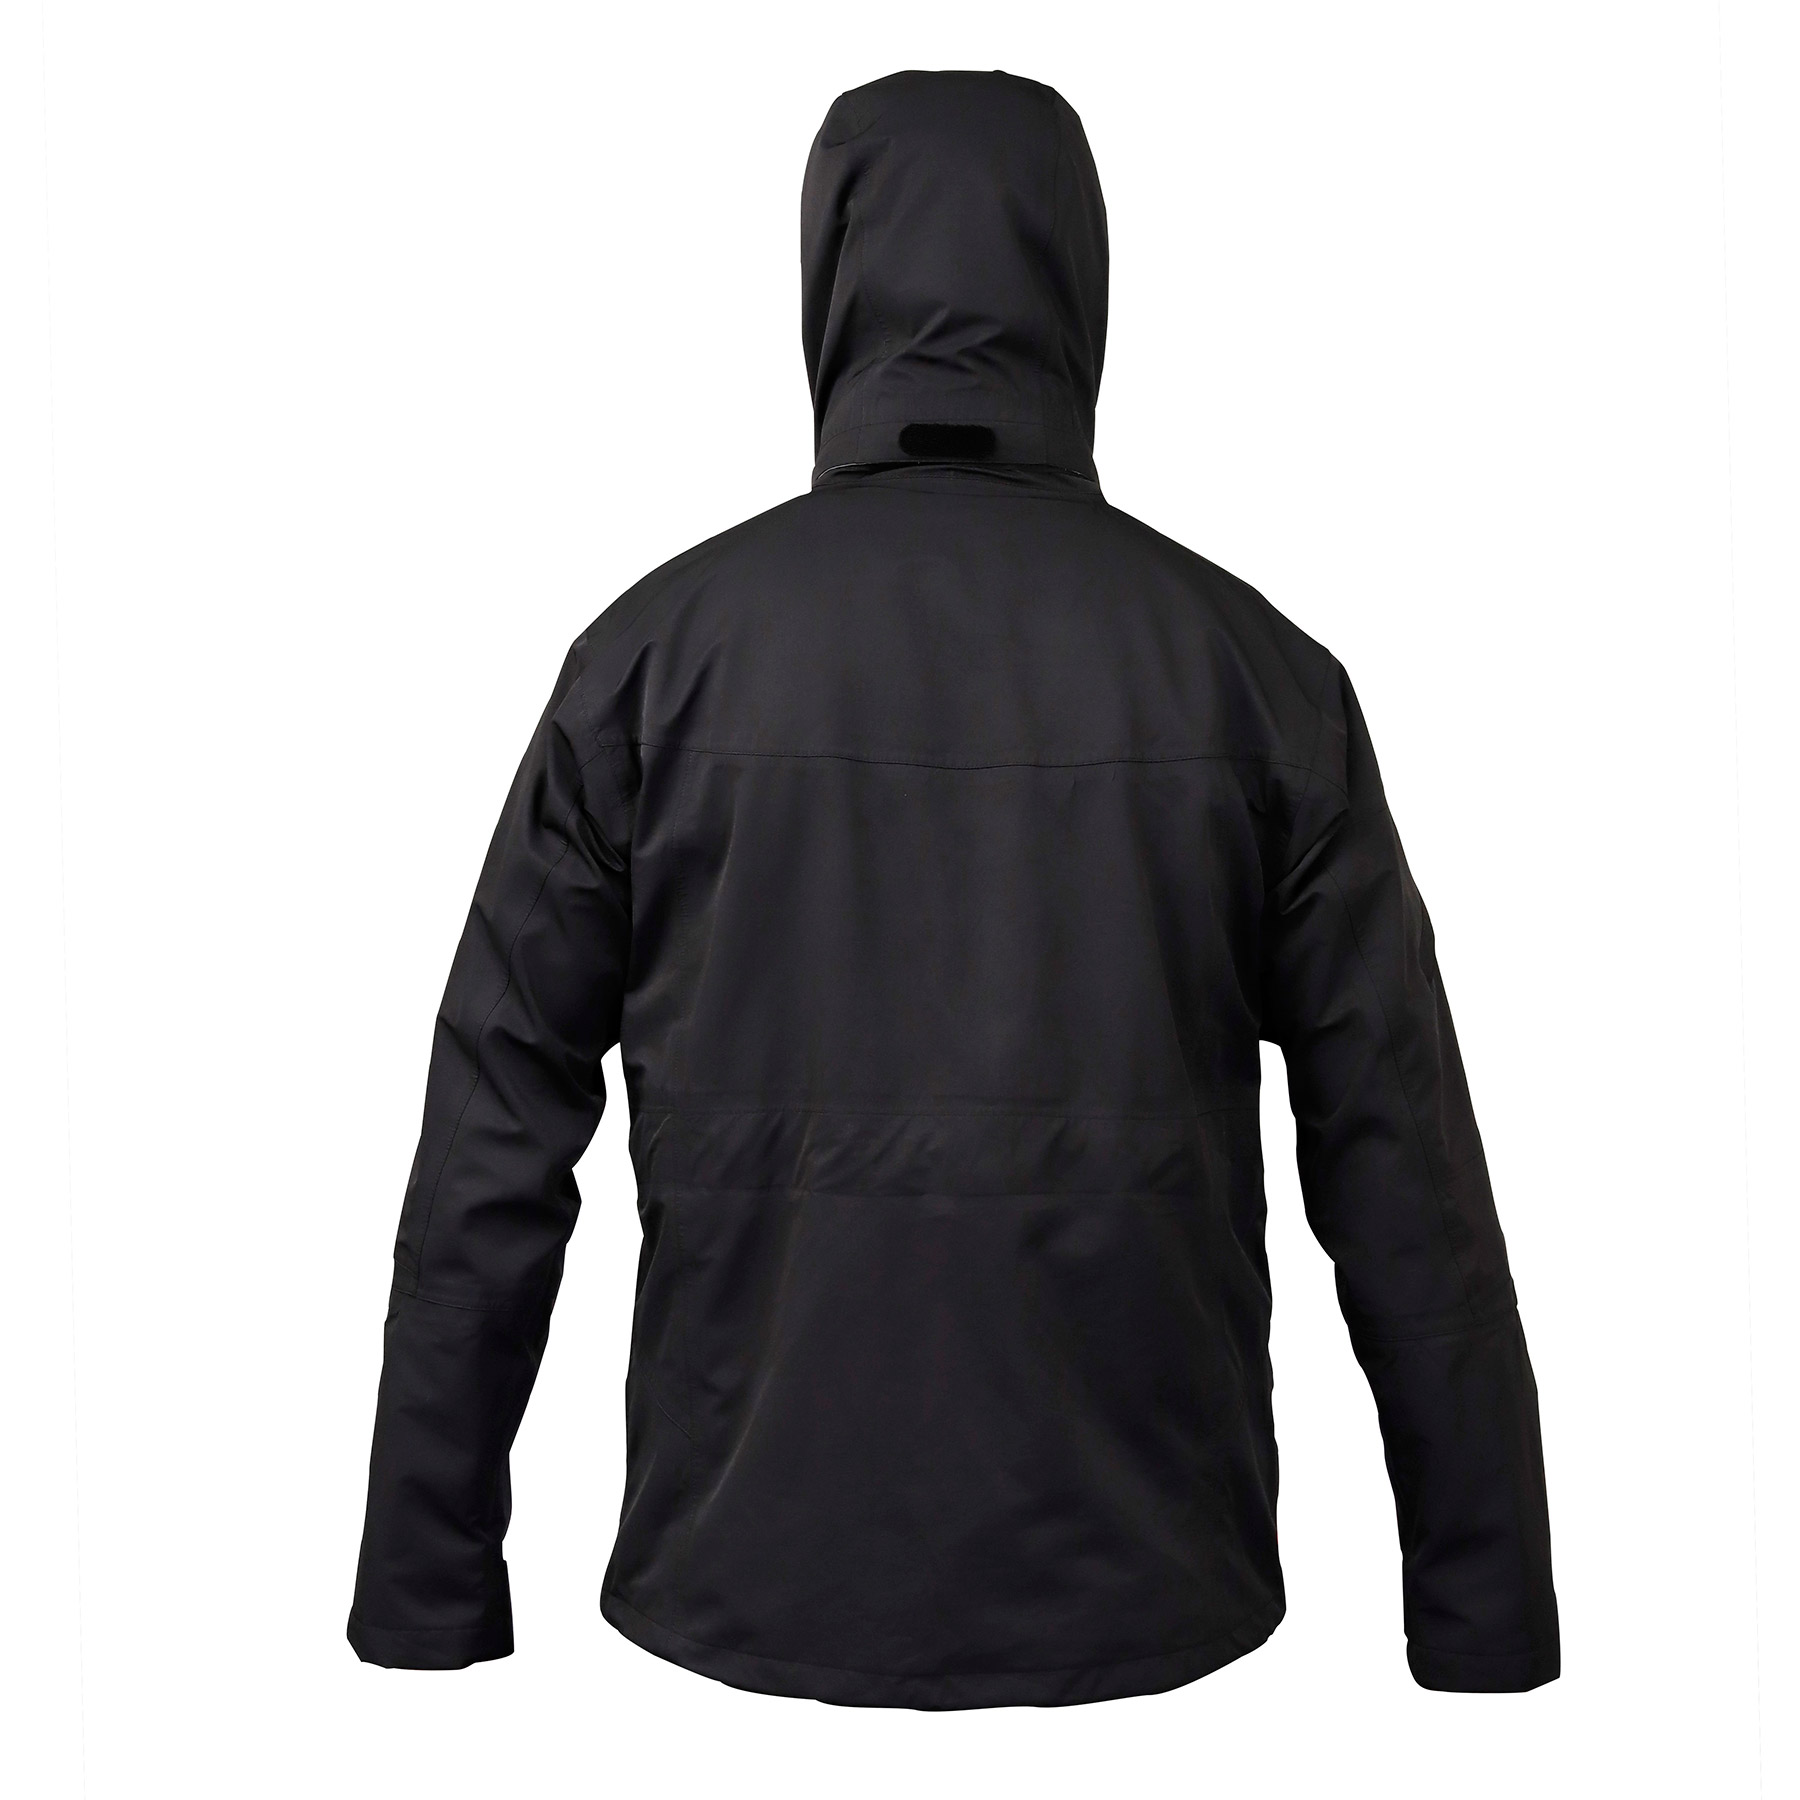 Women s Avalanche 3-in-1 Winter Jacket 300GSM - Black  8a560e87133c